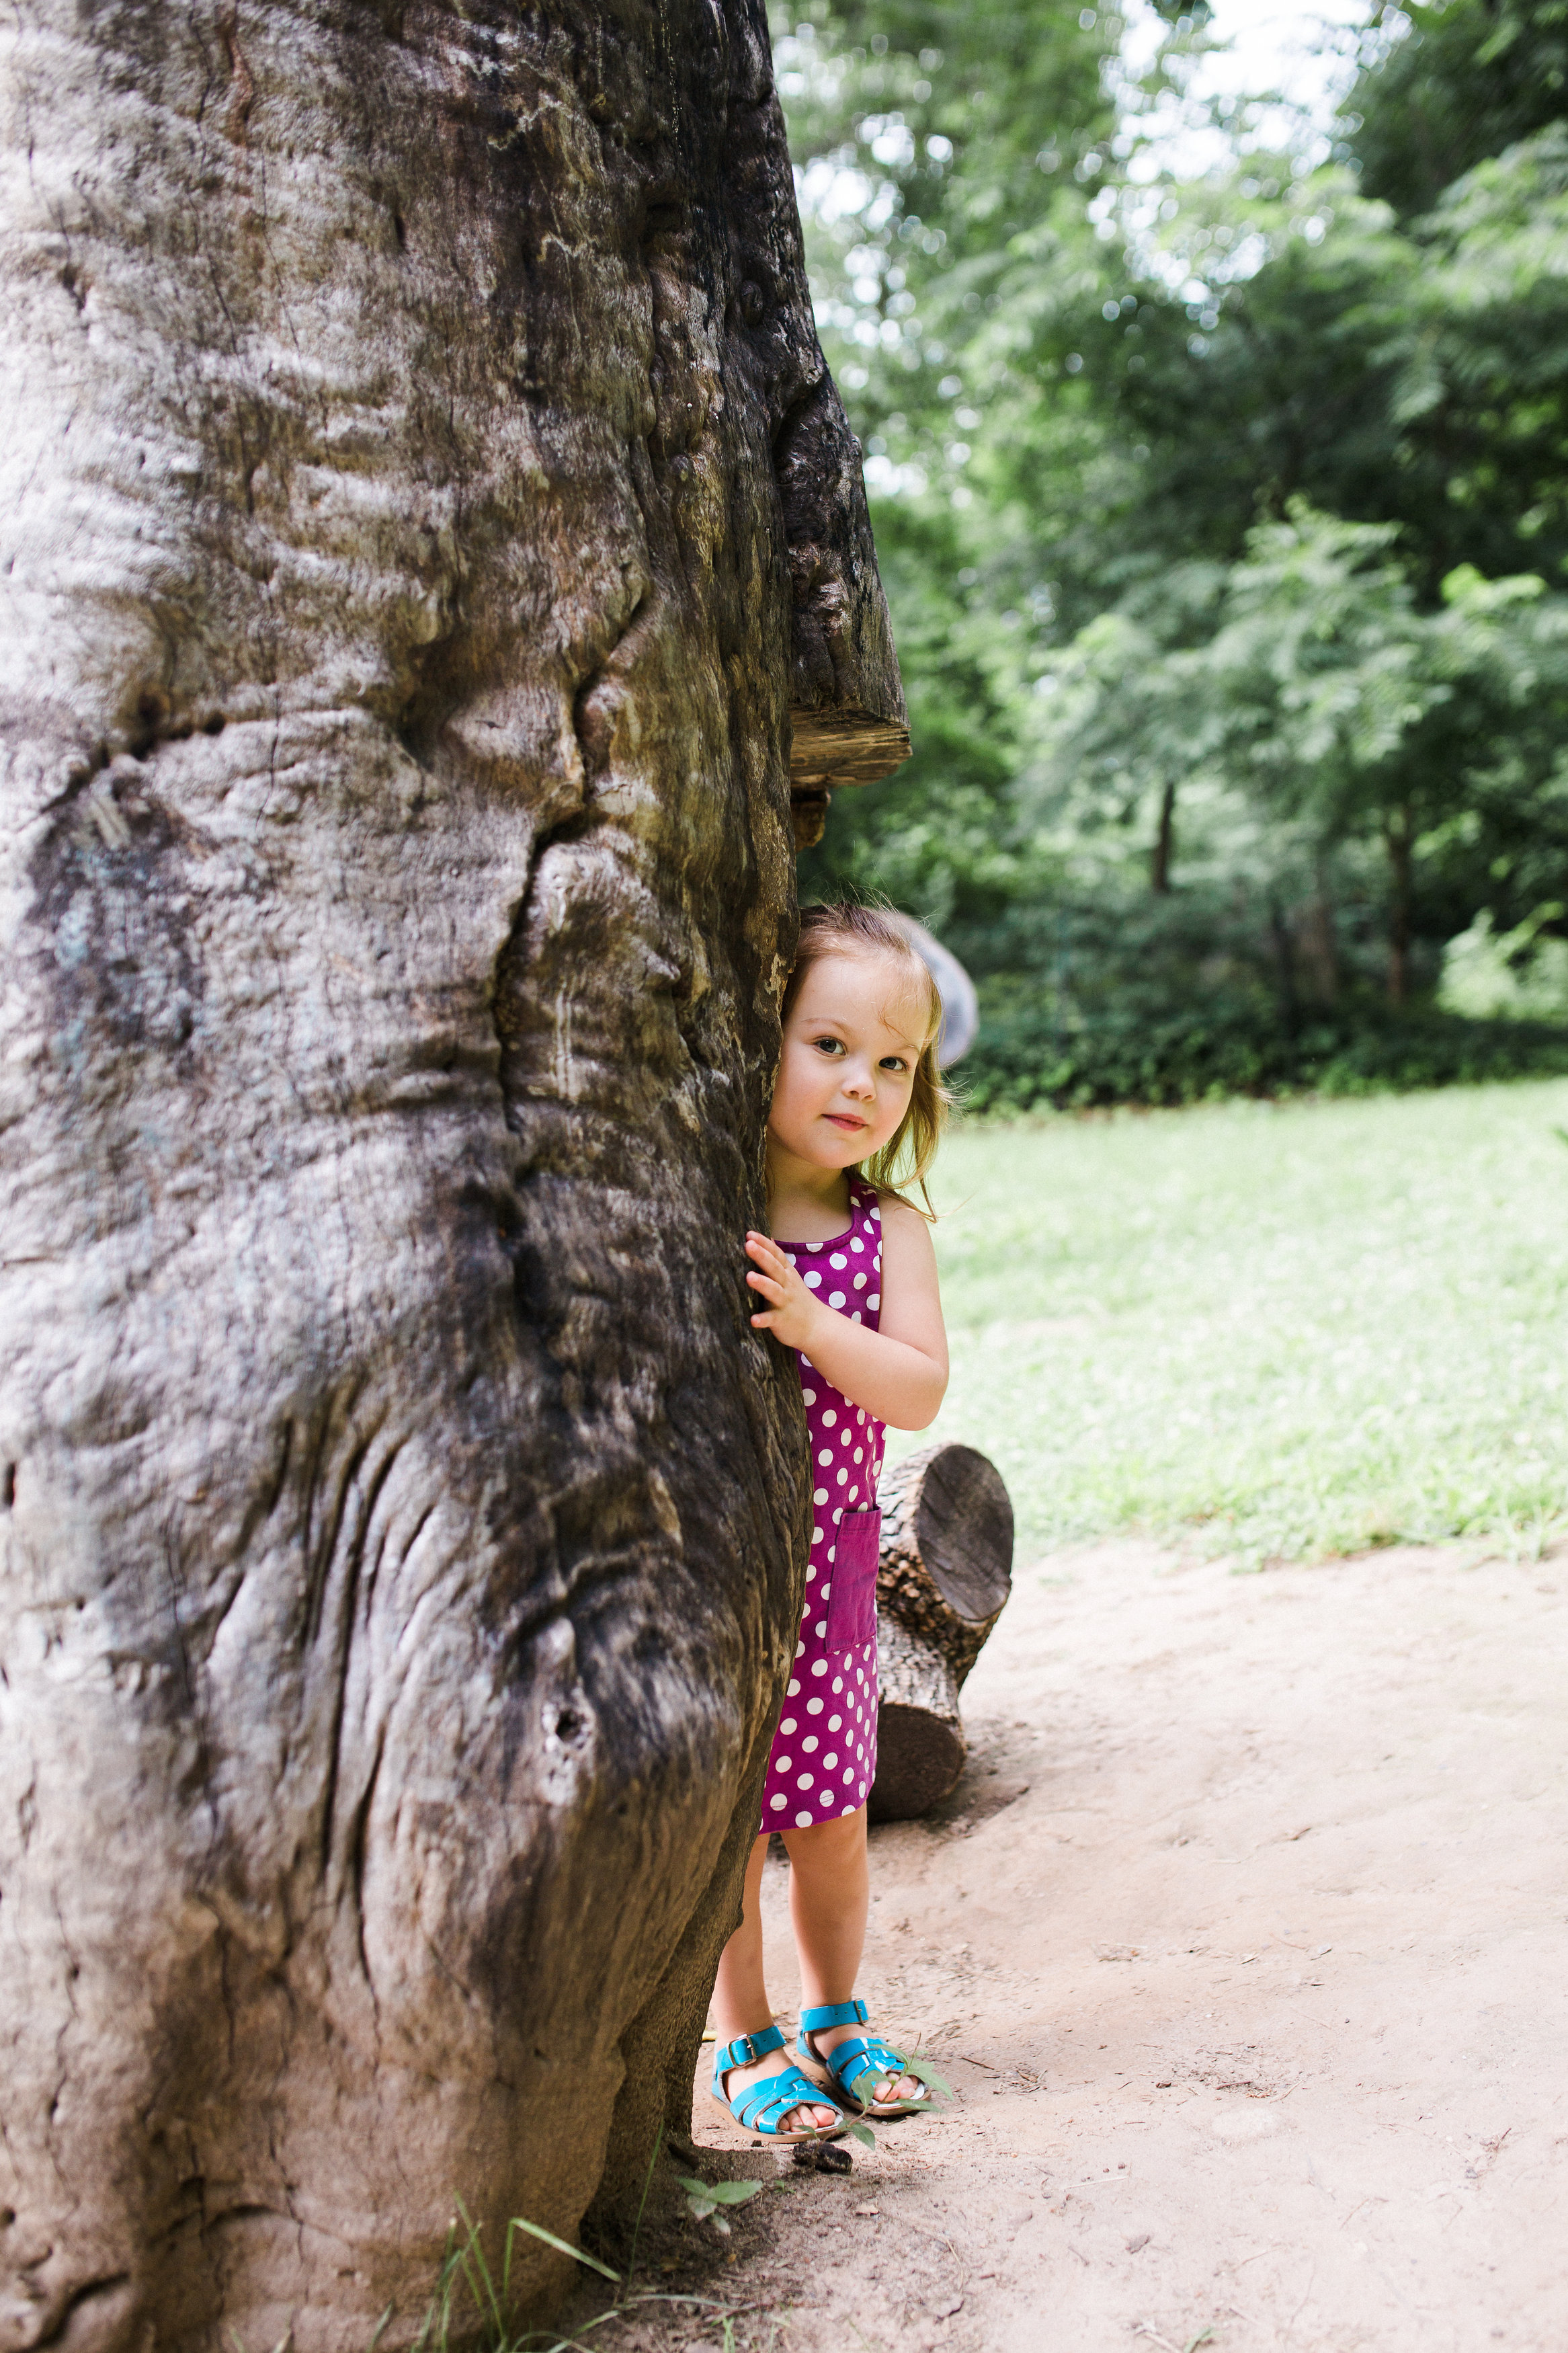 prospect-park-family-photography_natural-playground-15.jpg